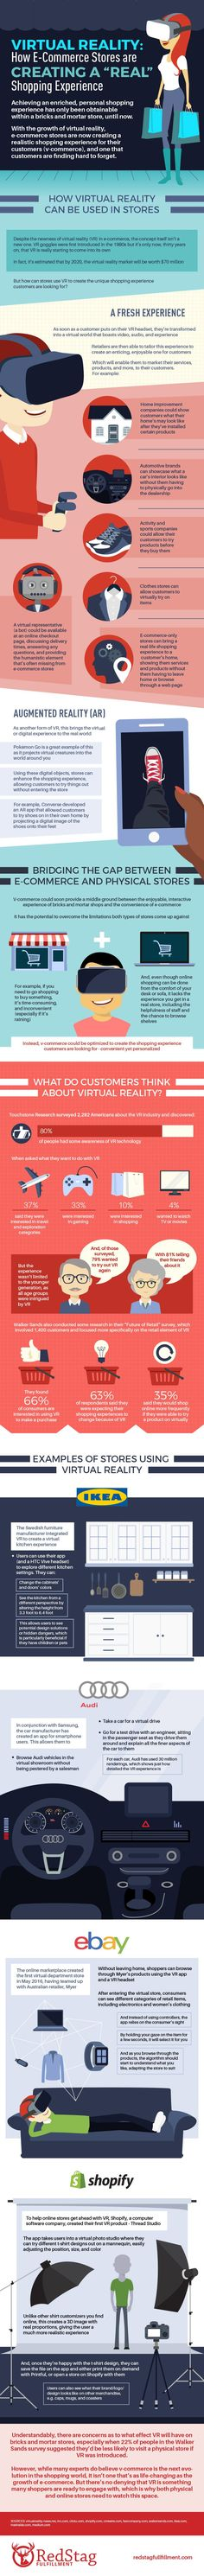 How Virtual Reality Could Help Your Ecommerce Website [Infographic]